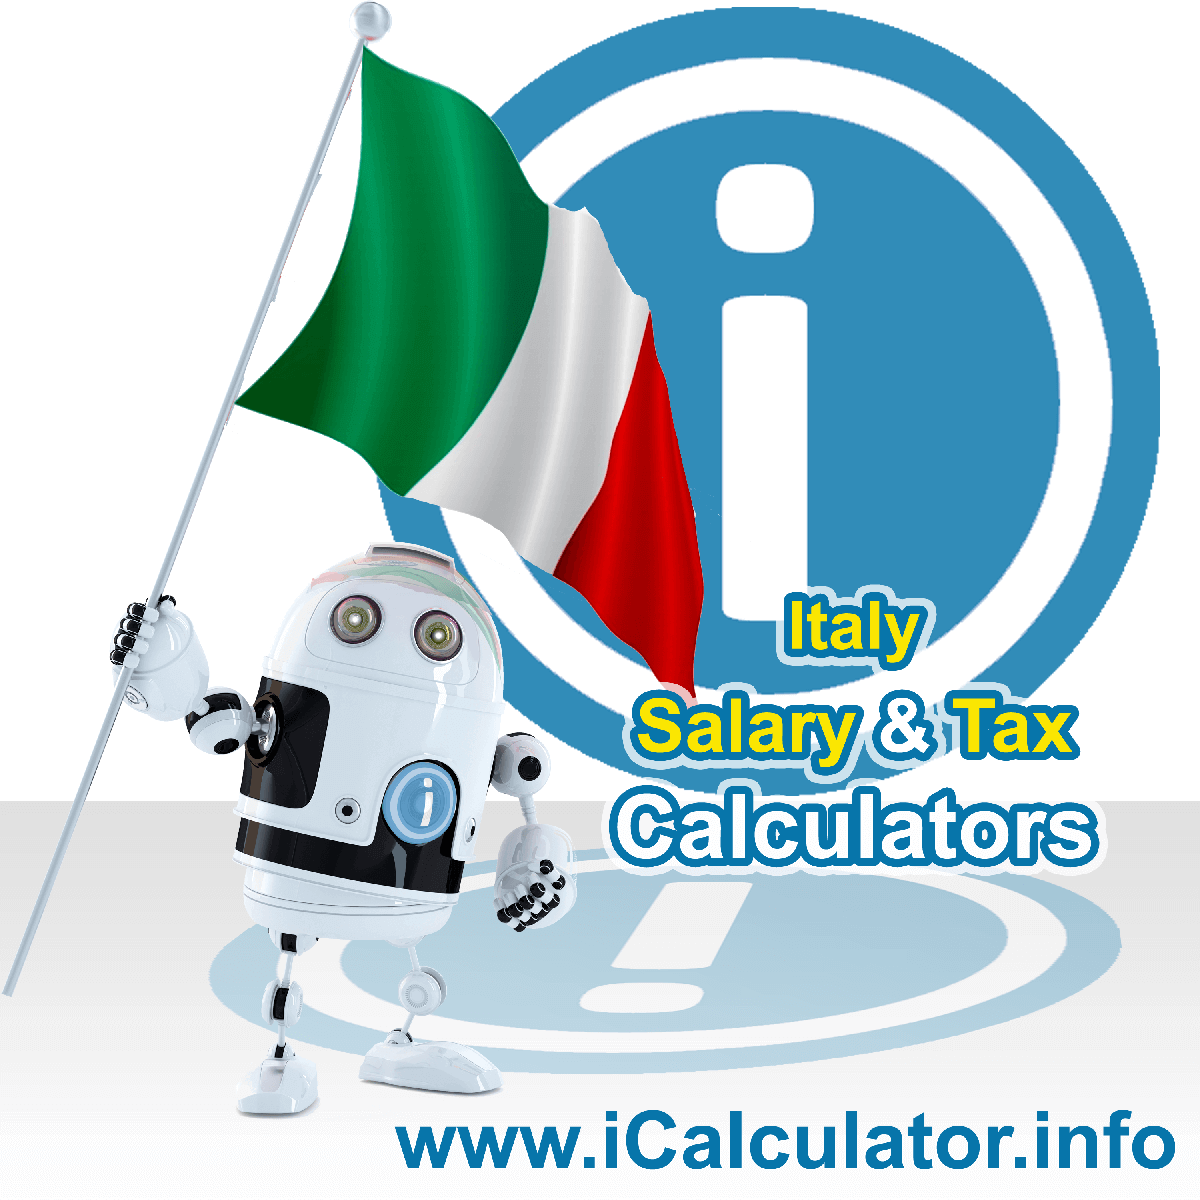 Italy Saalry Calculator. This image shows the Italy flag and information relating to the tax calculation and instructins for using the Italy Tax Calculator for national, regional and municipal payroll calculations in Italy